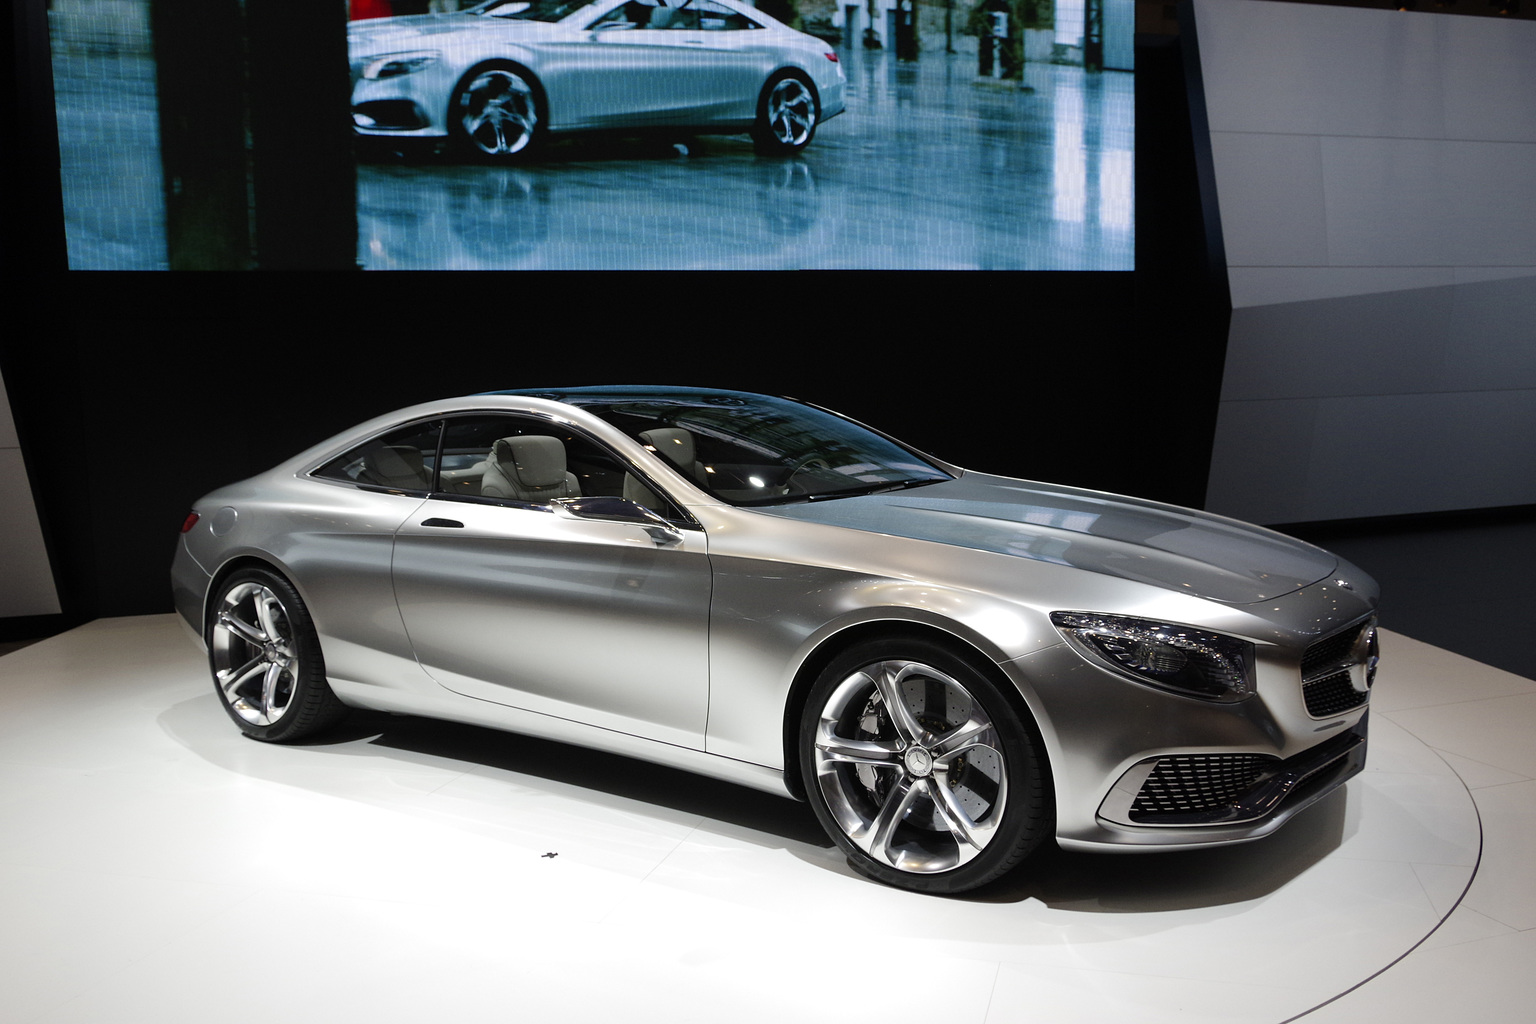 2013 mercedes benz concept s class coup review. Black Bedroom Furniture Sets. Home Design Ideas